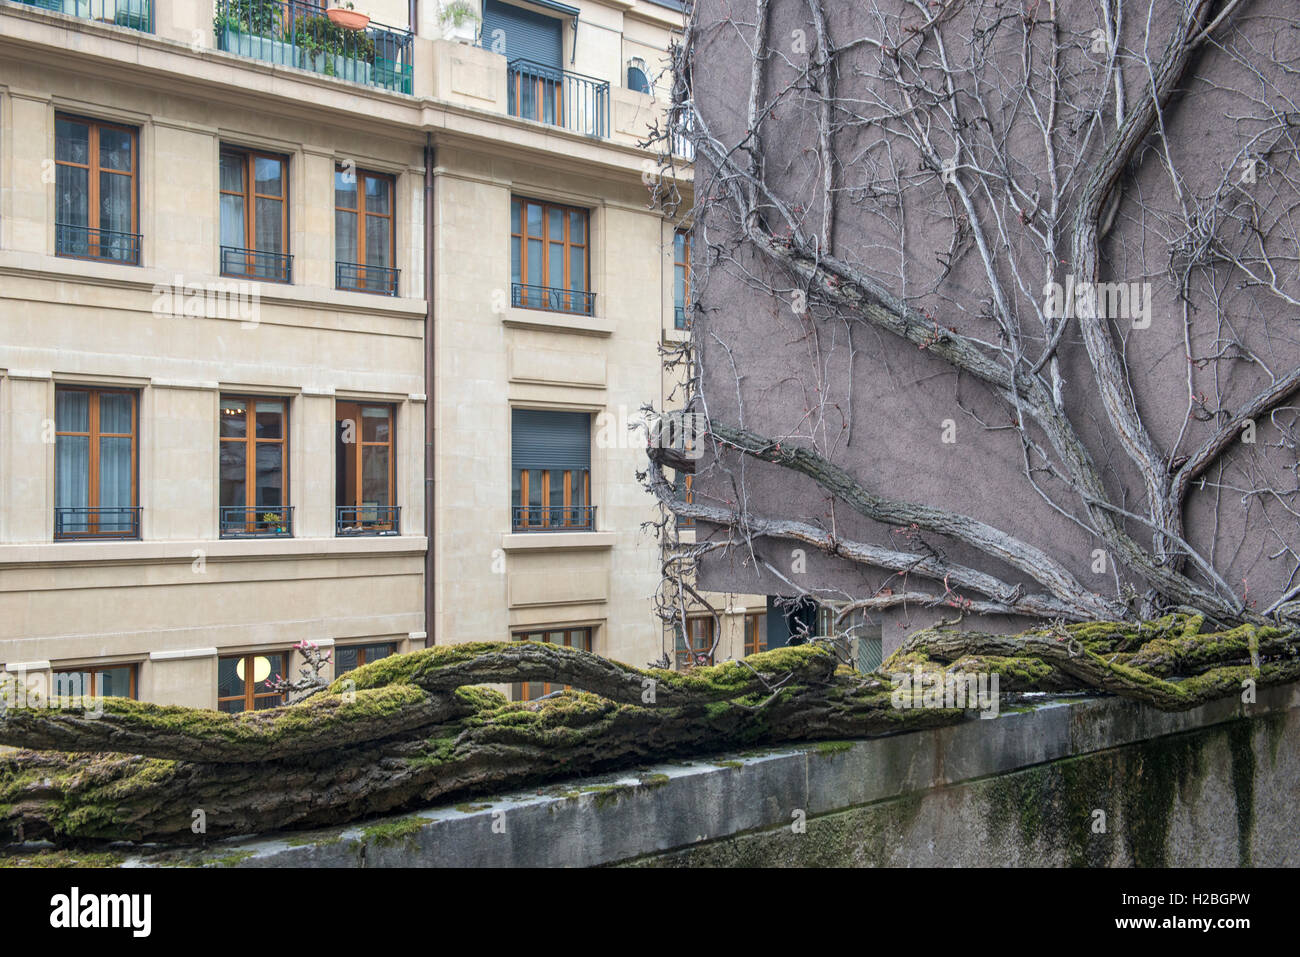 Leafless creeper climbing a balcony and house wall, old town of Geneva, Switzerland - Stock Image